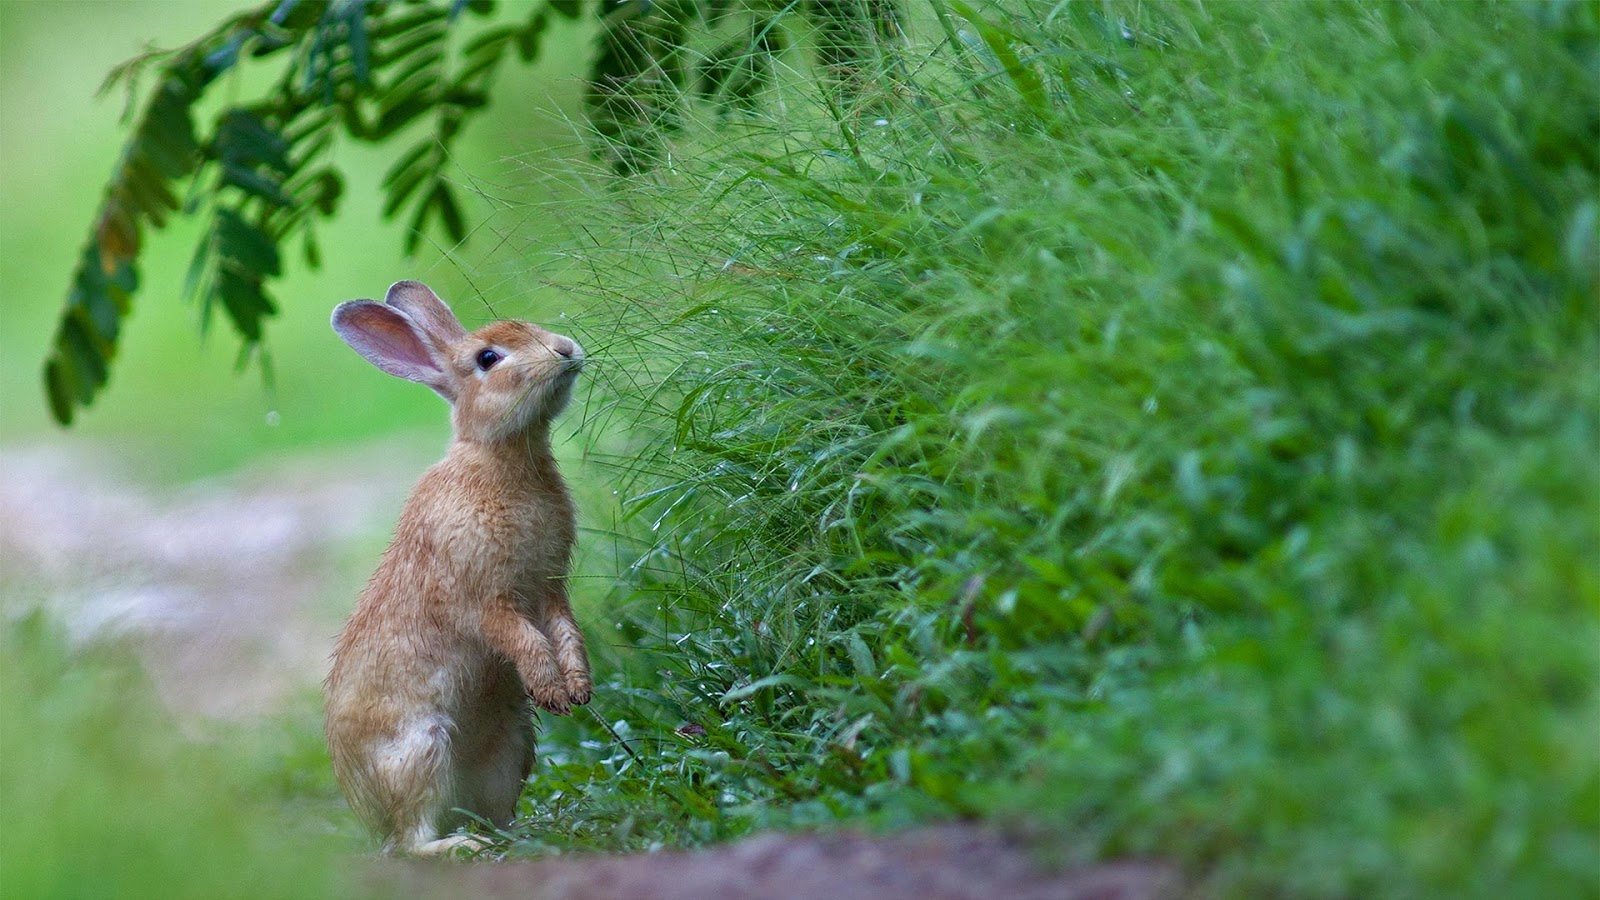 A rabbit in the grass © wisan224/Getty Images Plus